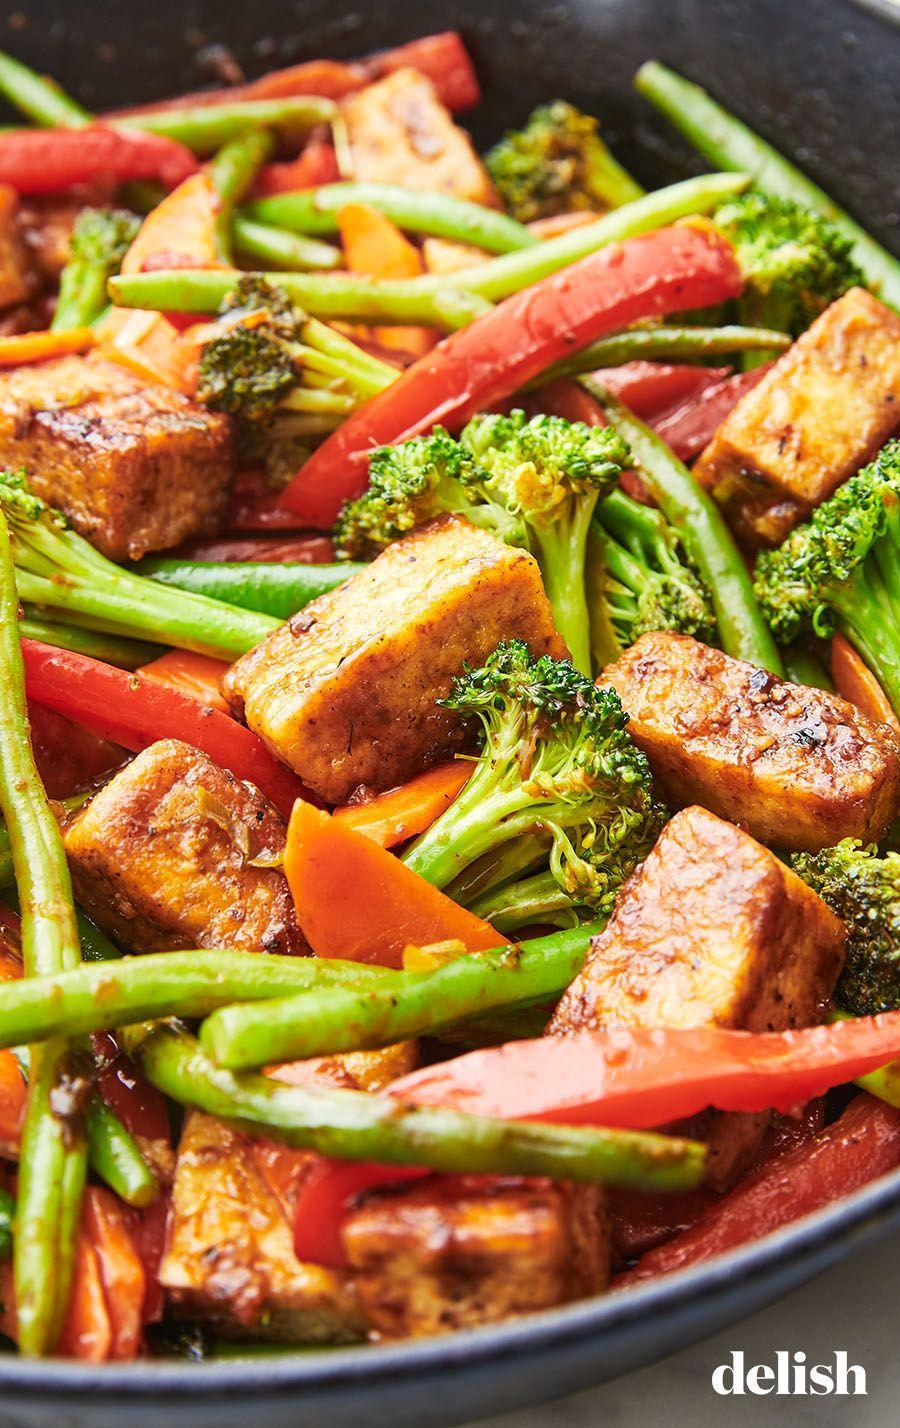 """<p>There's a mom-approved trick for getting the best tofu texture...</p><p>Get the recipe from <a href=""""https://www.delish.com/cooking/recipe-ideas/a26090091/tofu-stir-fry-recipe/"""" rel=""""nofollow noopener"""" target=""""_blank"""" data-ylk=""""slk:Delish"""" class=""""link rapid-noclick-resp"""">Delish</a>.</p>"""